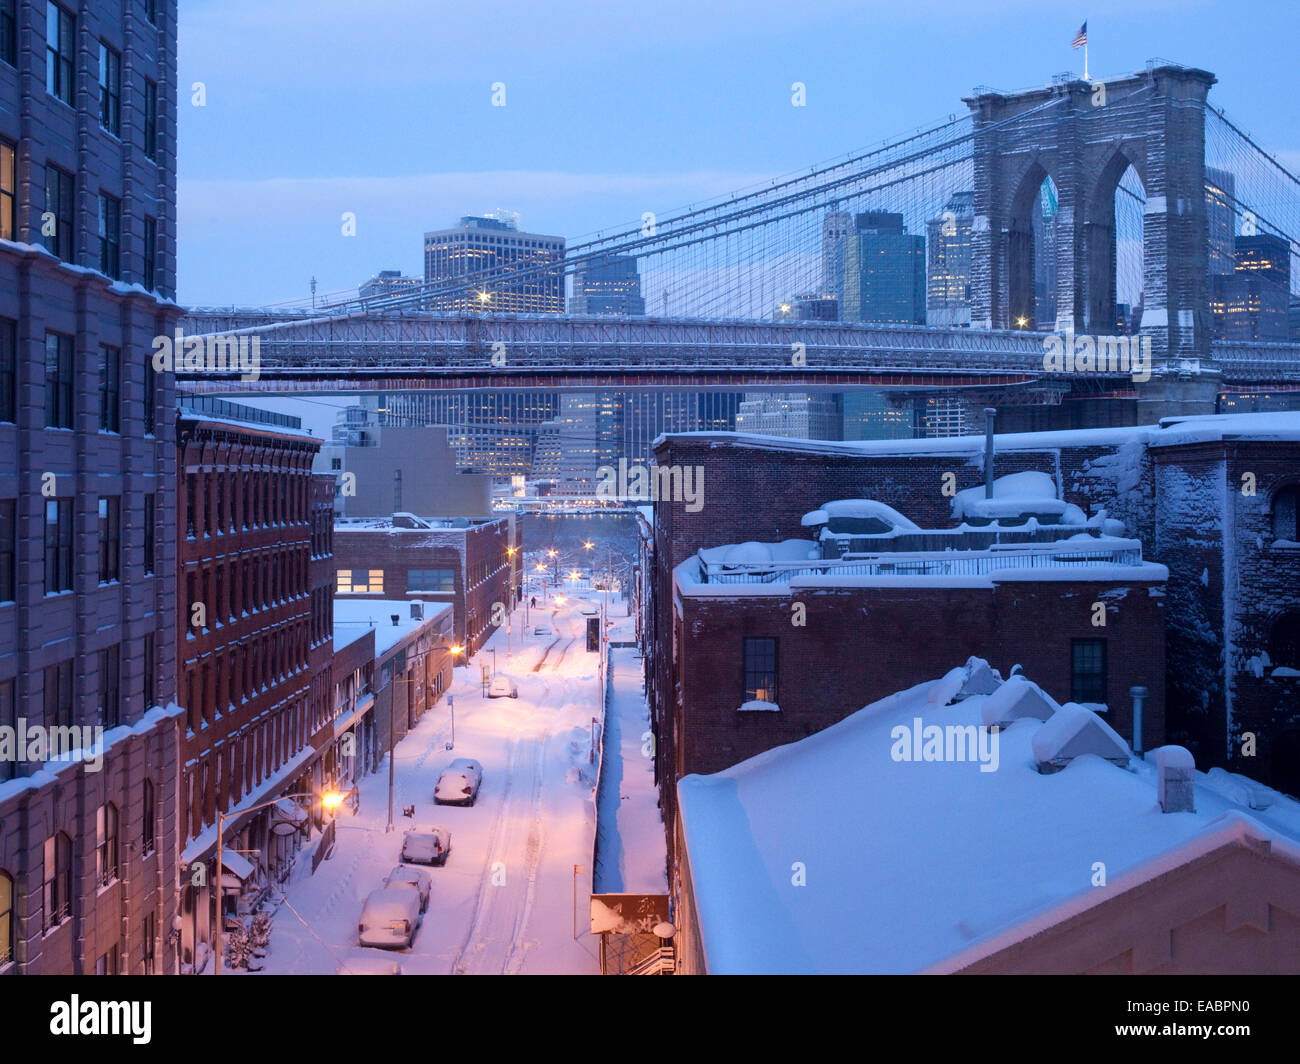 Dumbo, Brooklyn Neighborhood and span of Brooklyn Bridge in early morning just after snow storm. - Stock Image